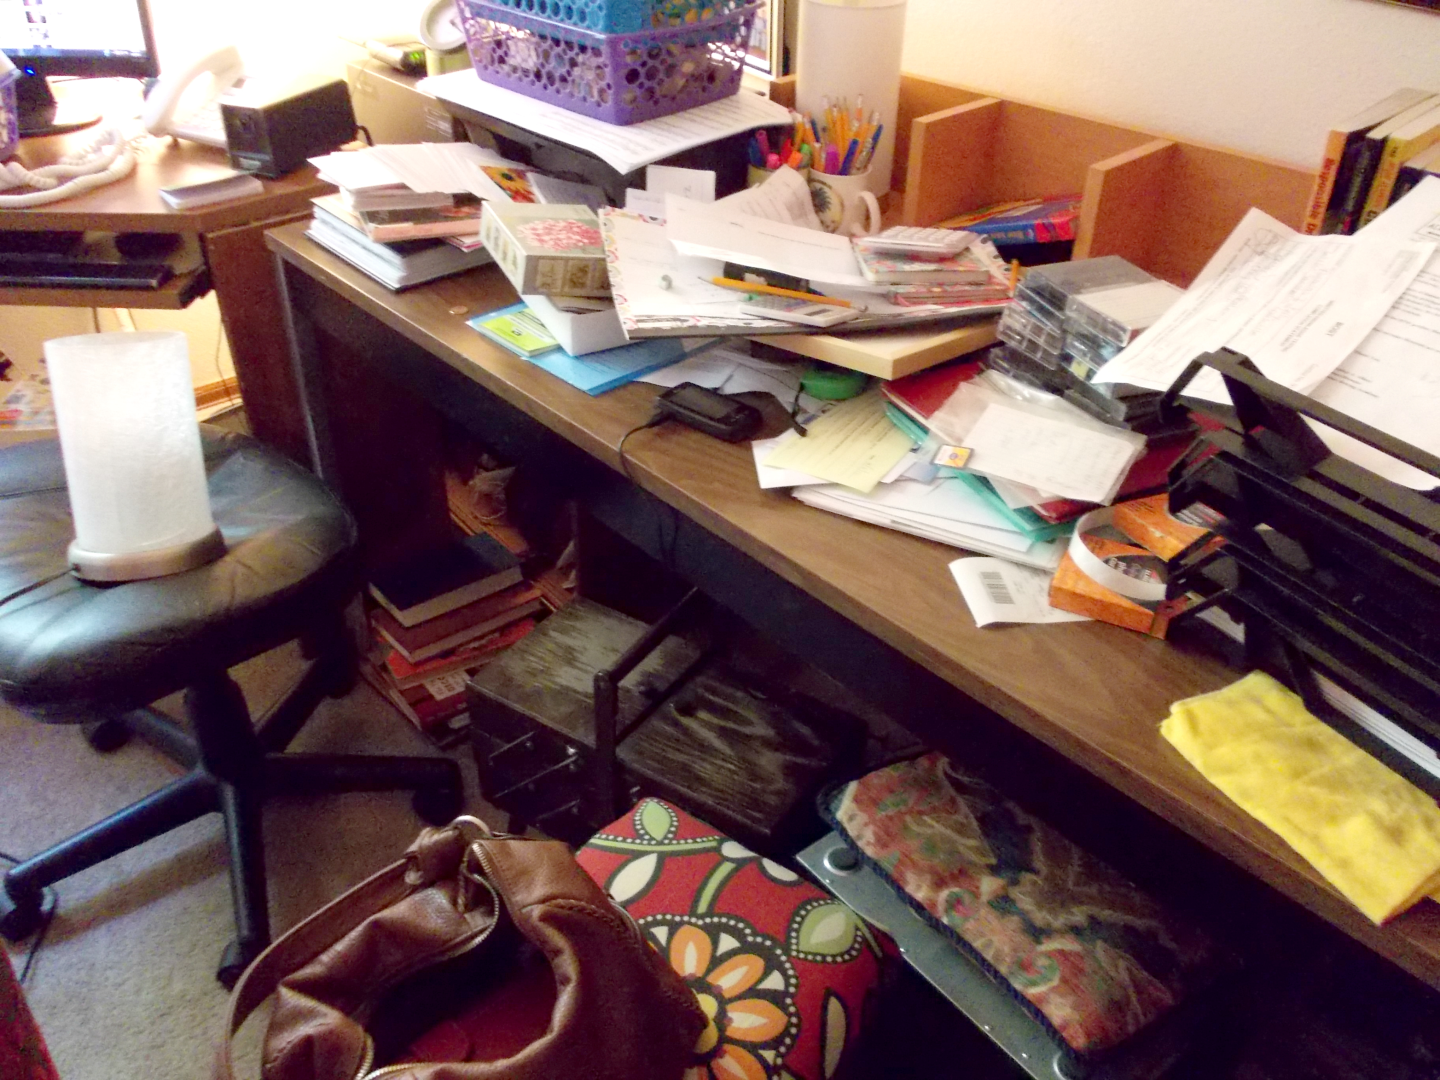 Is your home cluttered and disorganized?